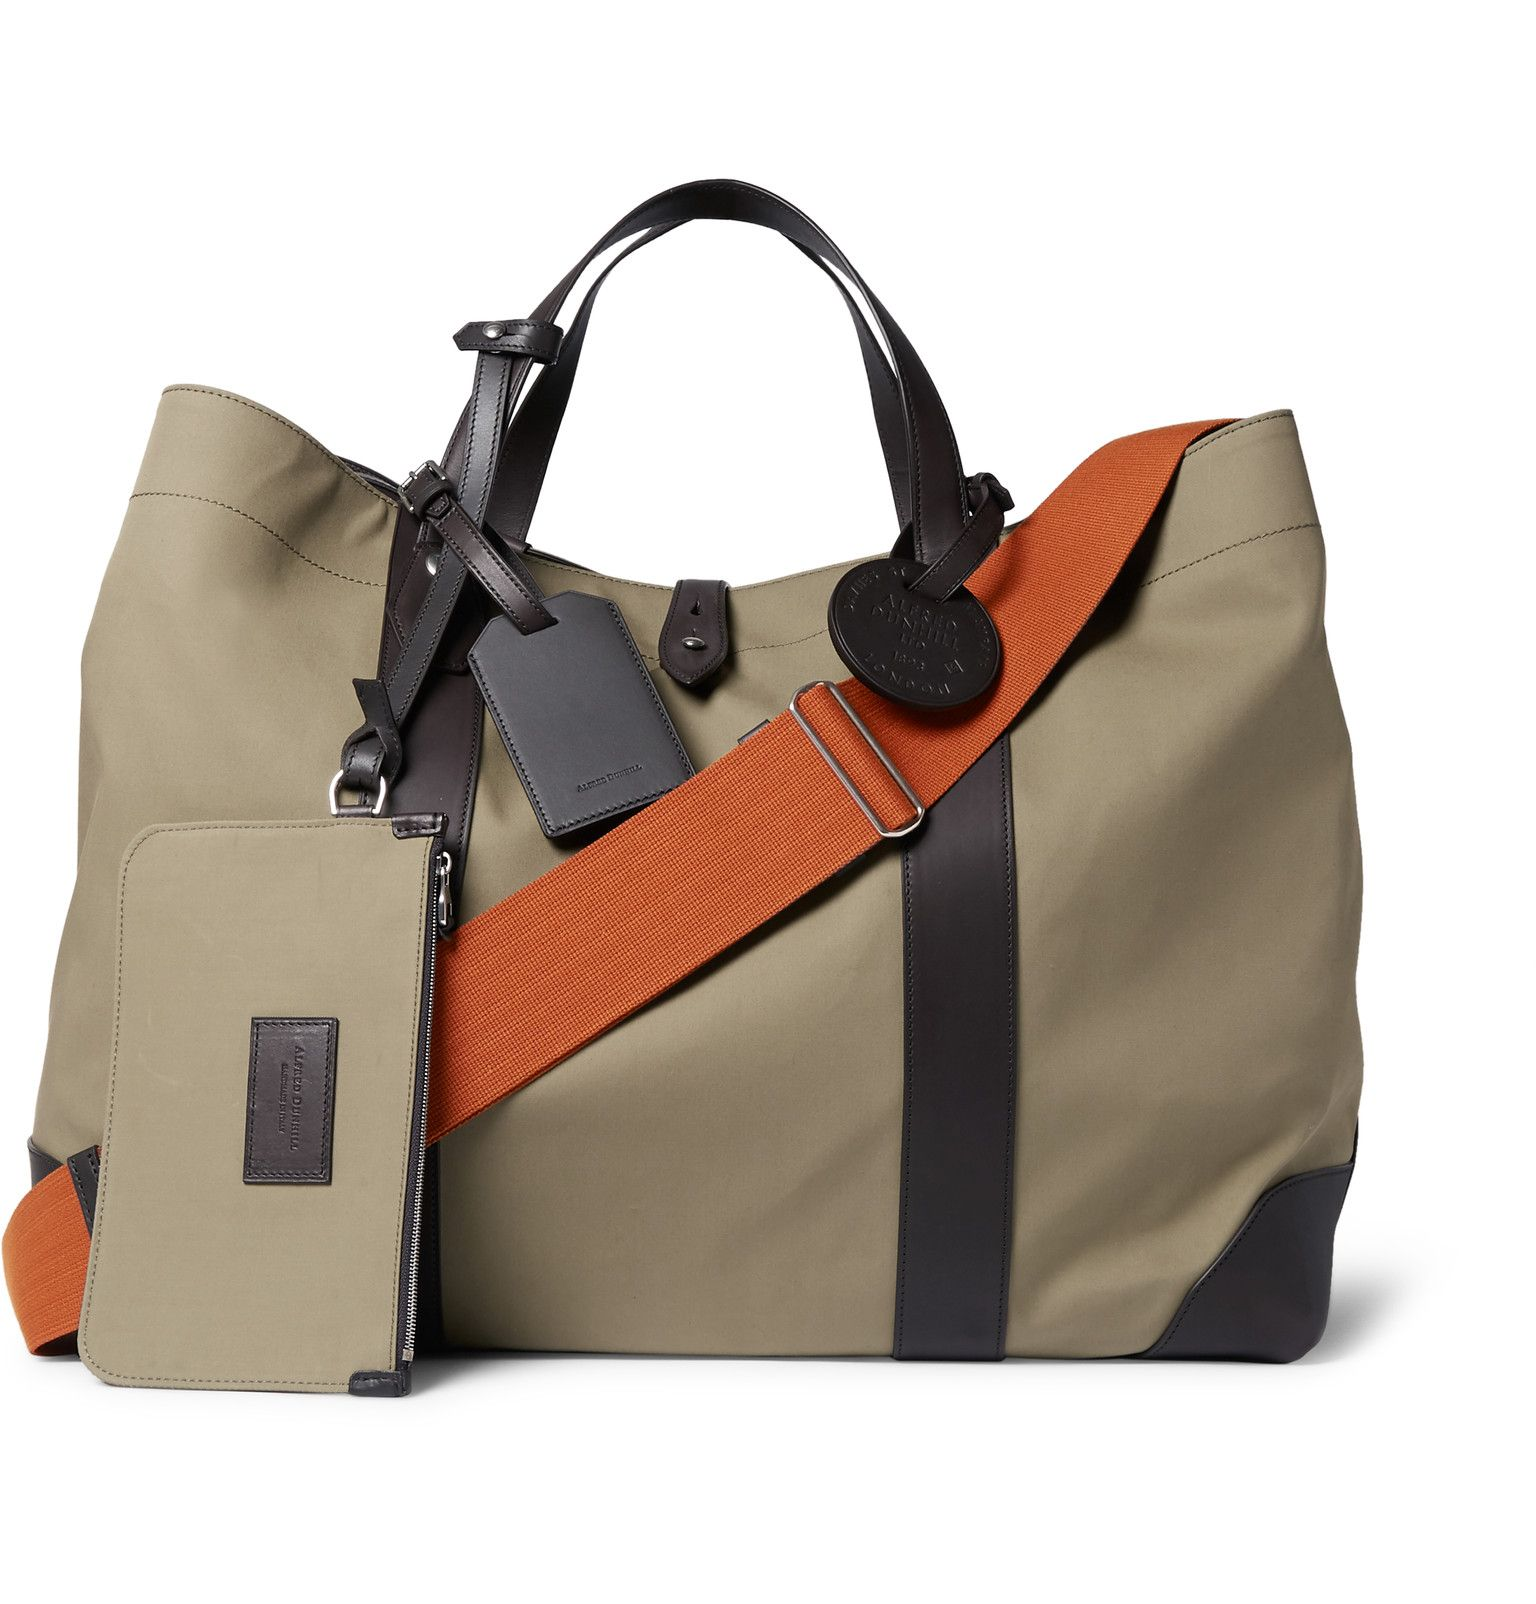 44988ae9d3dc Dunhill Leather Totes, Leather Bags, Sports Bags, Men Bags, Prada Men,